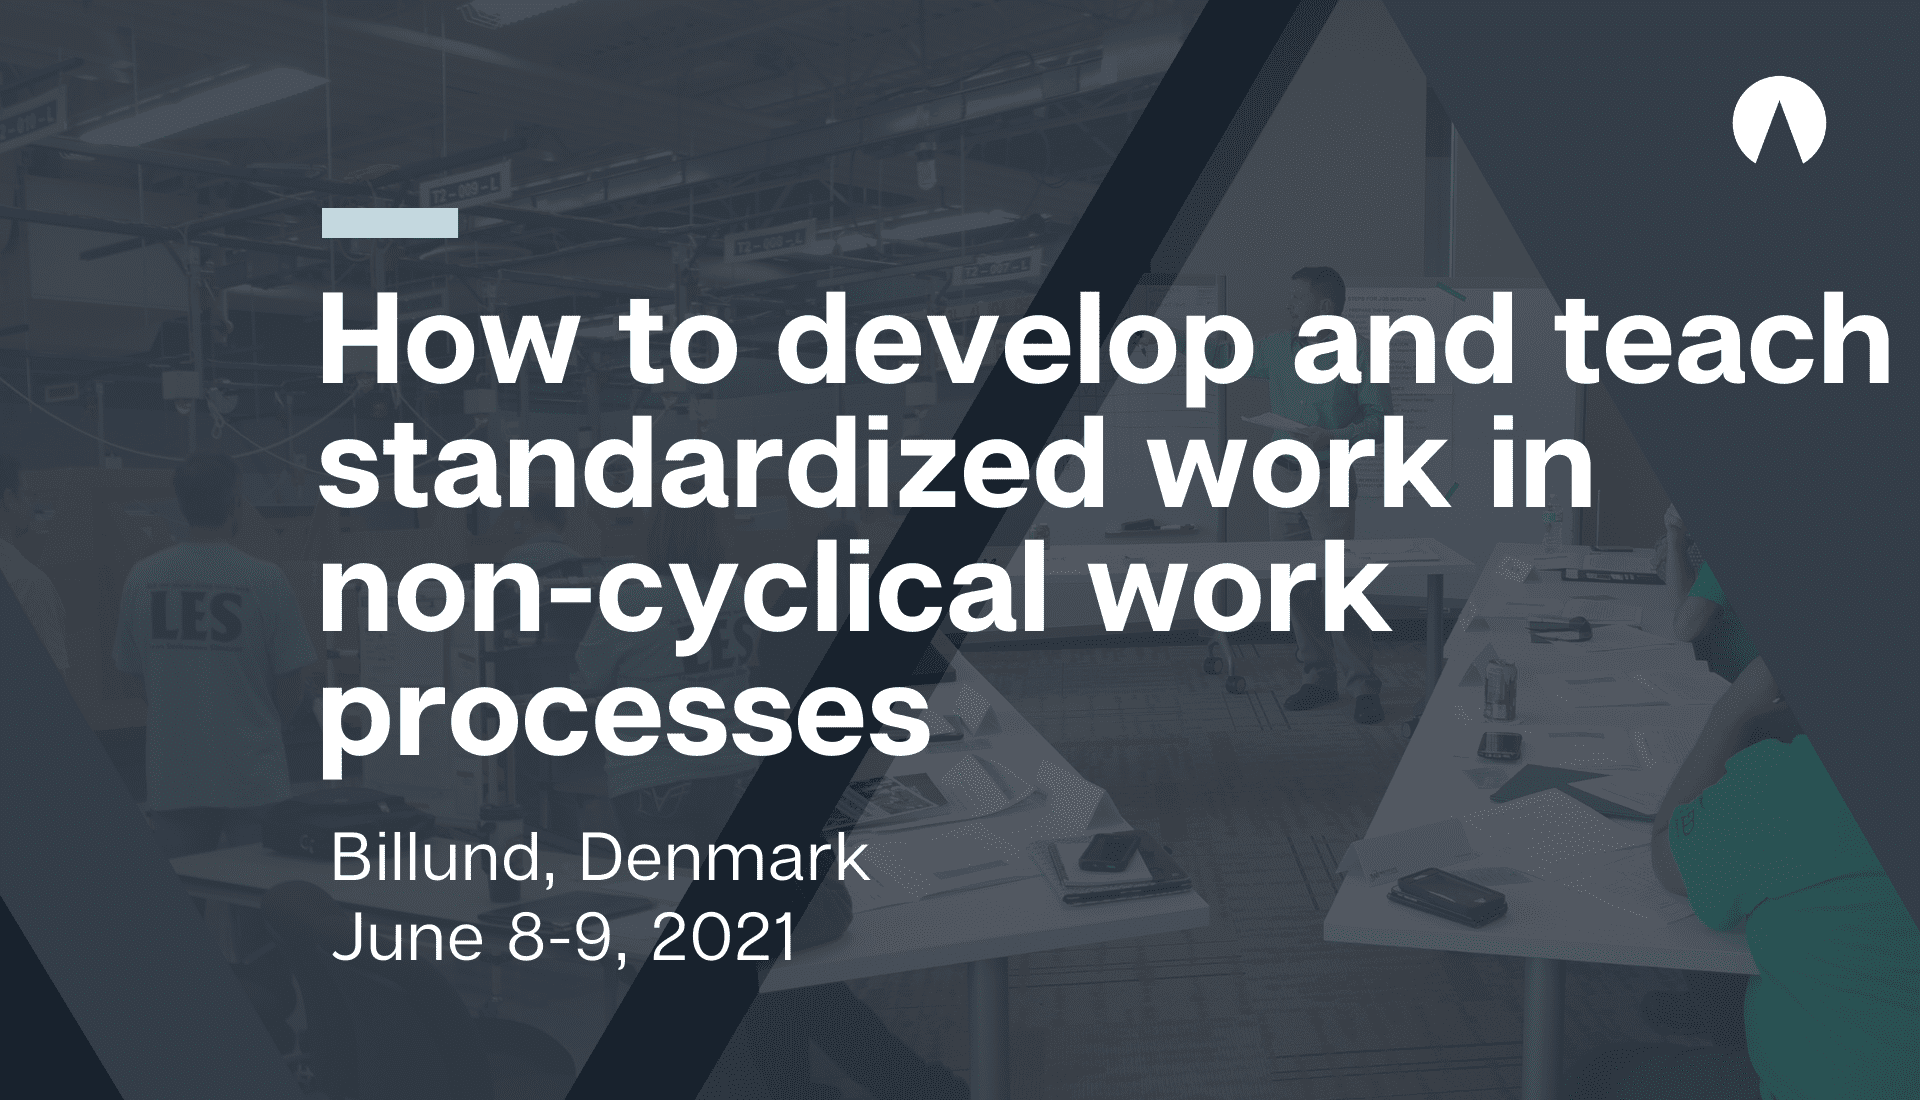 How to develop and teach standardized work in non-cyclical work processes